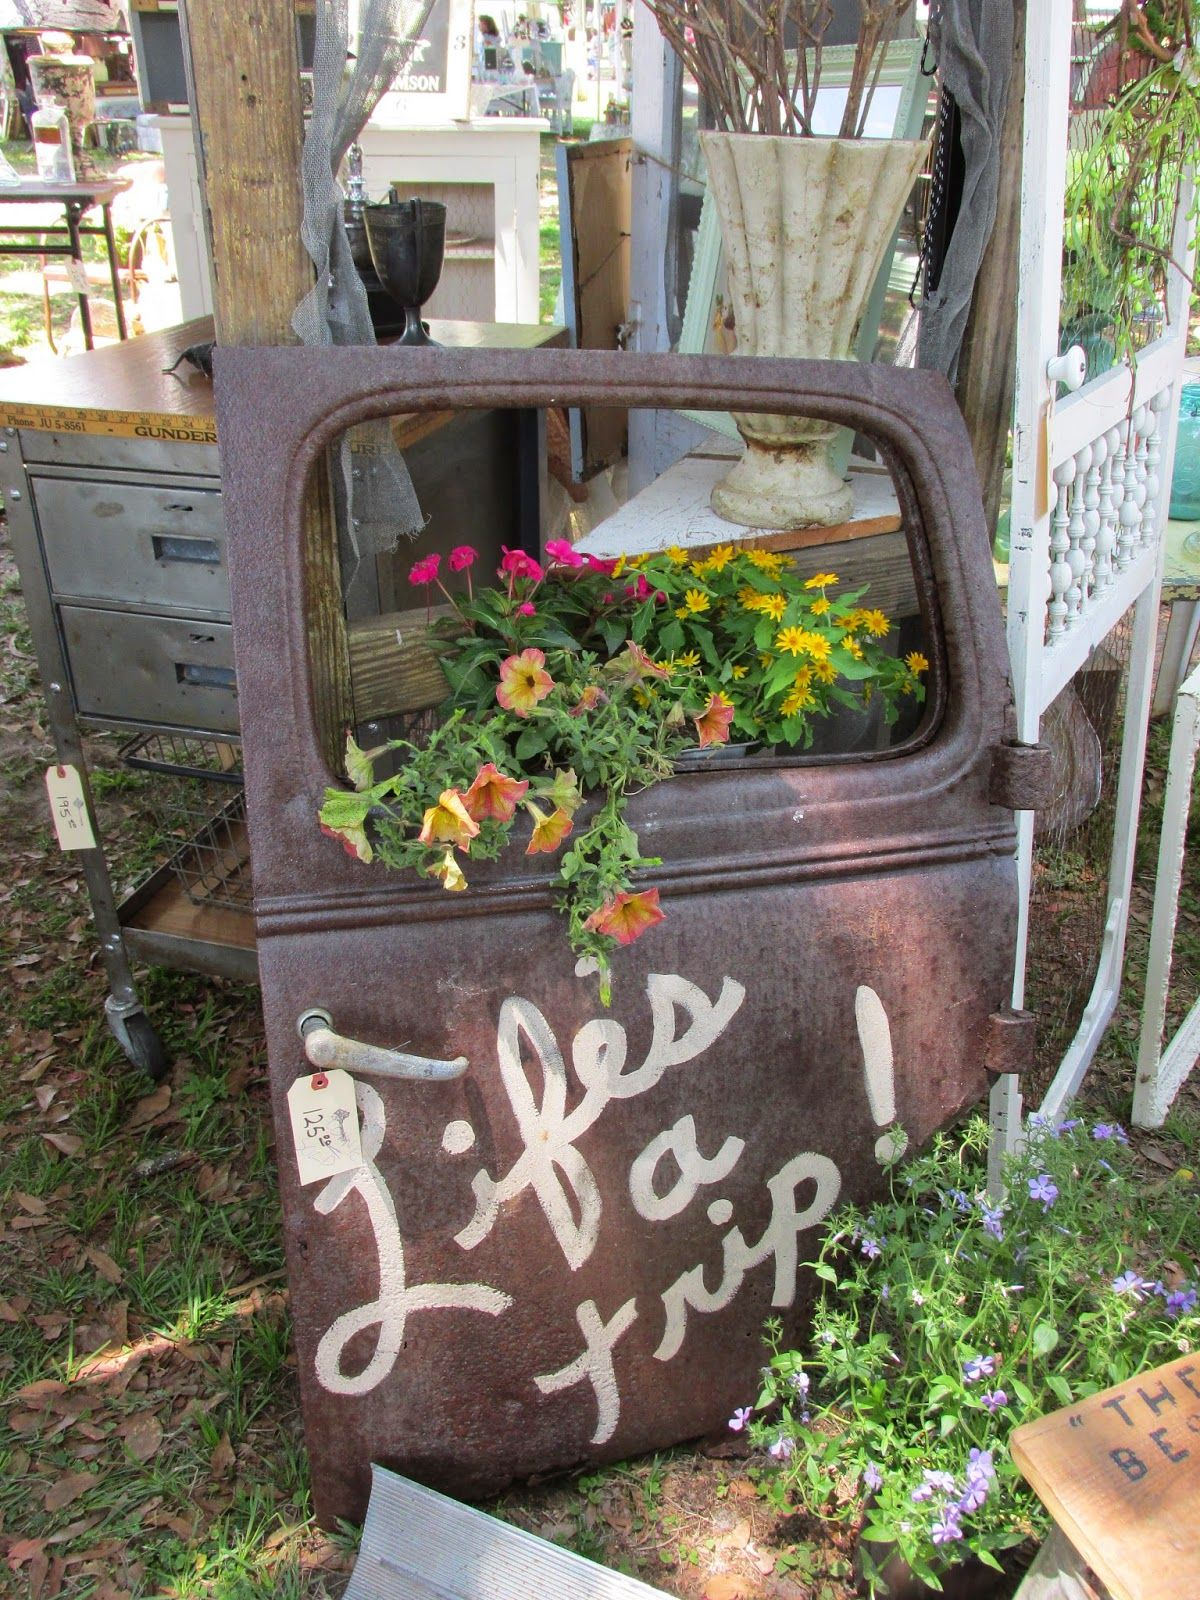 Pinterest Shabby Chic Garten 1 Displaying And An Old Car Door One Shabby Old House